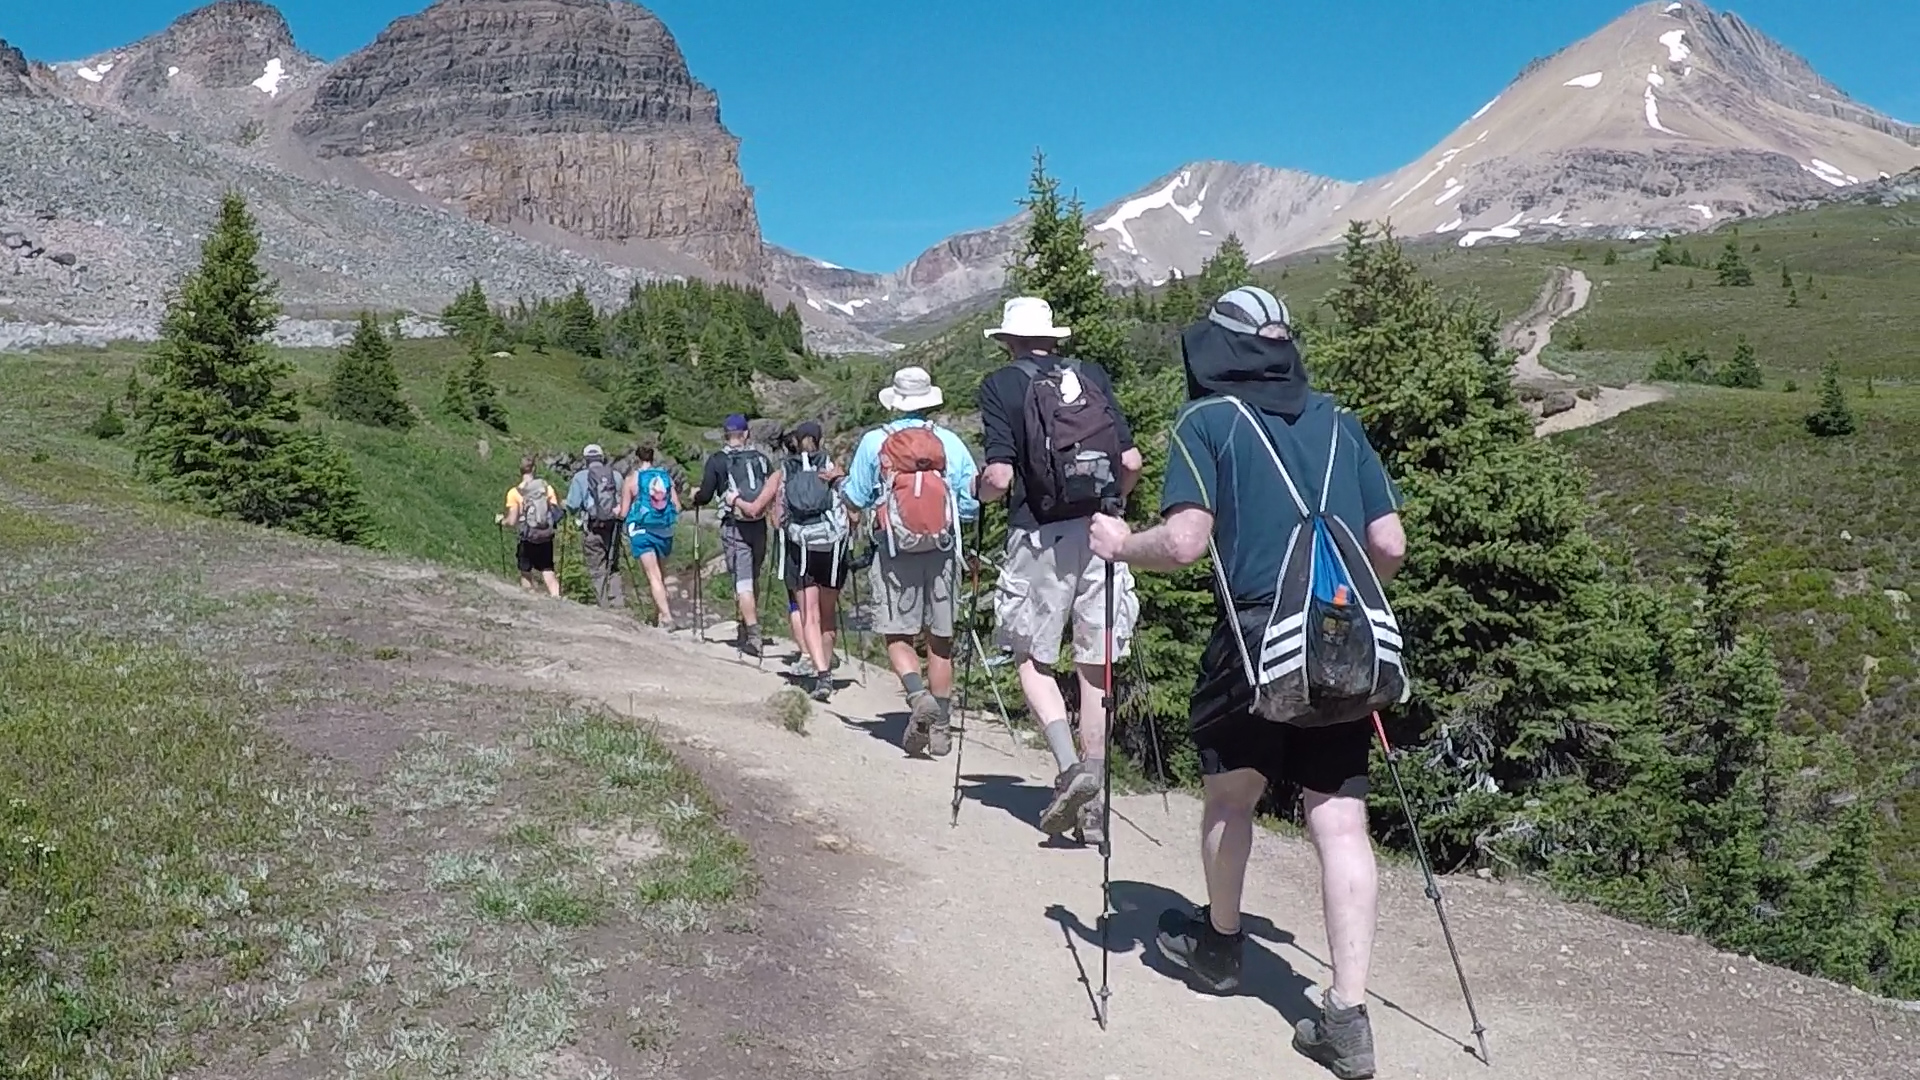 Small group adventure tour in Canada.